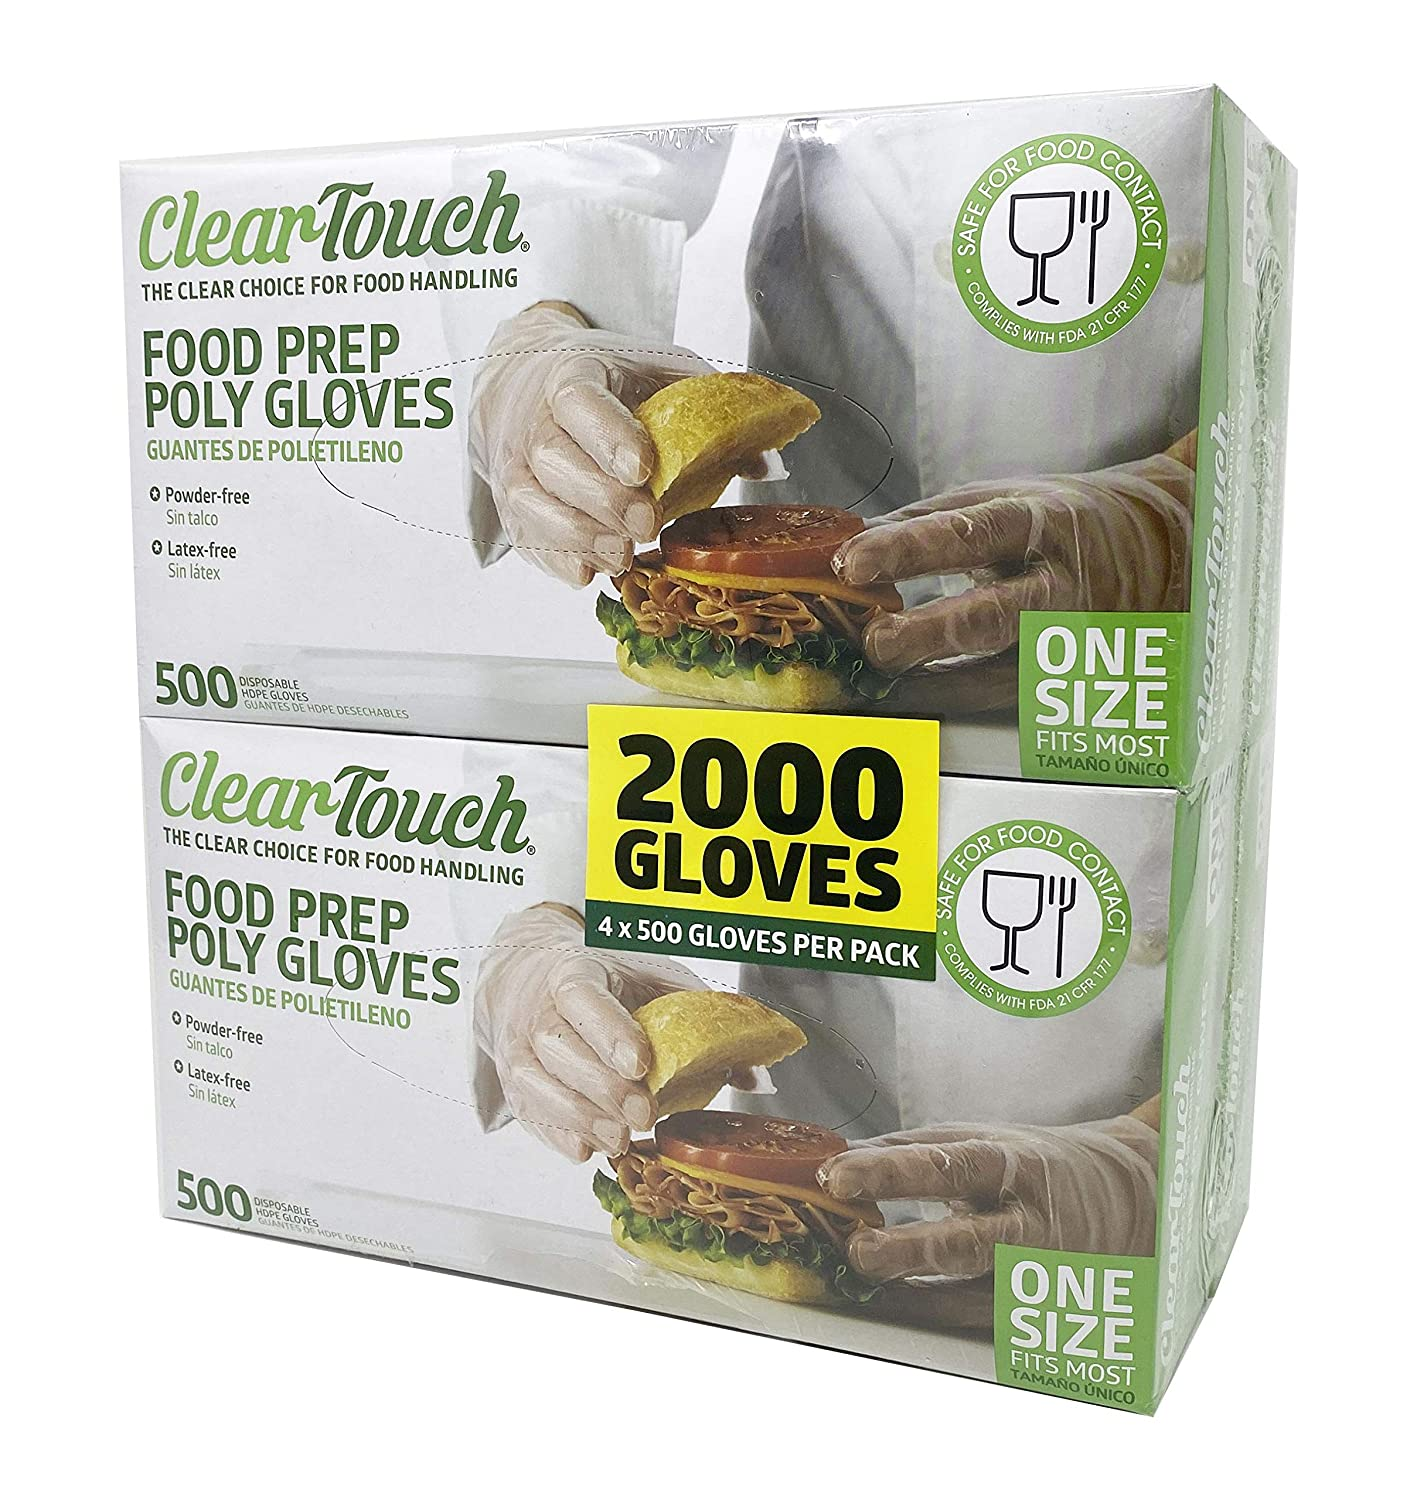 B07BFTGVJW Medline Clear Touch Food Prep Poly Gloves, Latex and Powder Free, One Size Fits Most, (2000 Count) 9138MZAVD1L